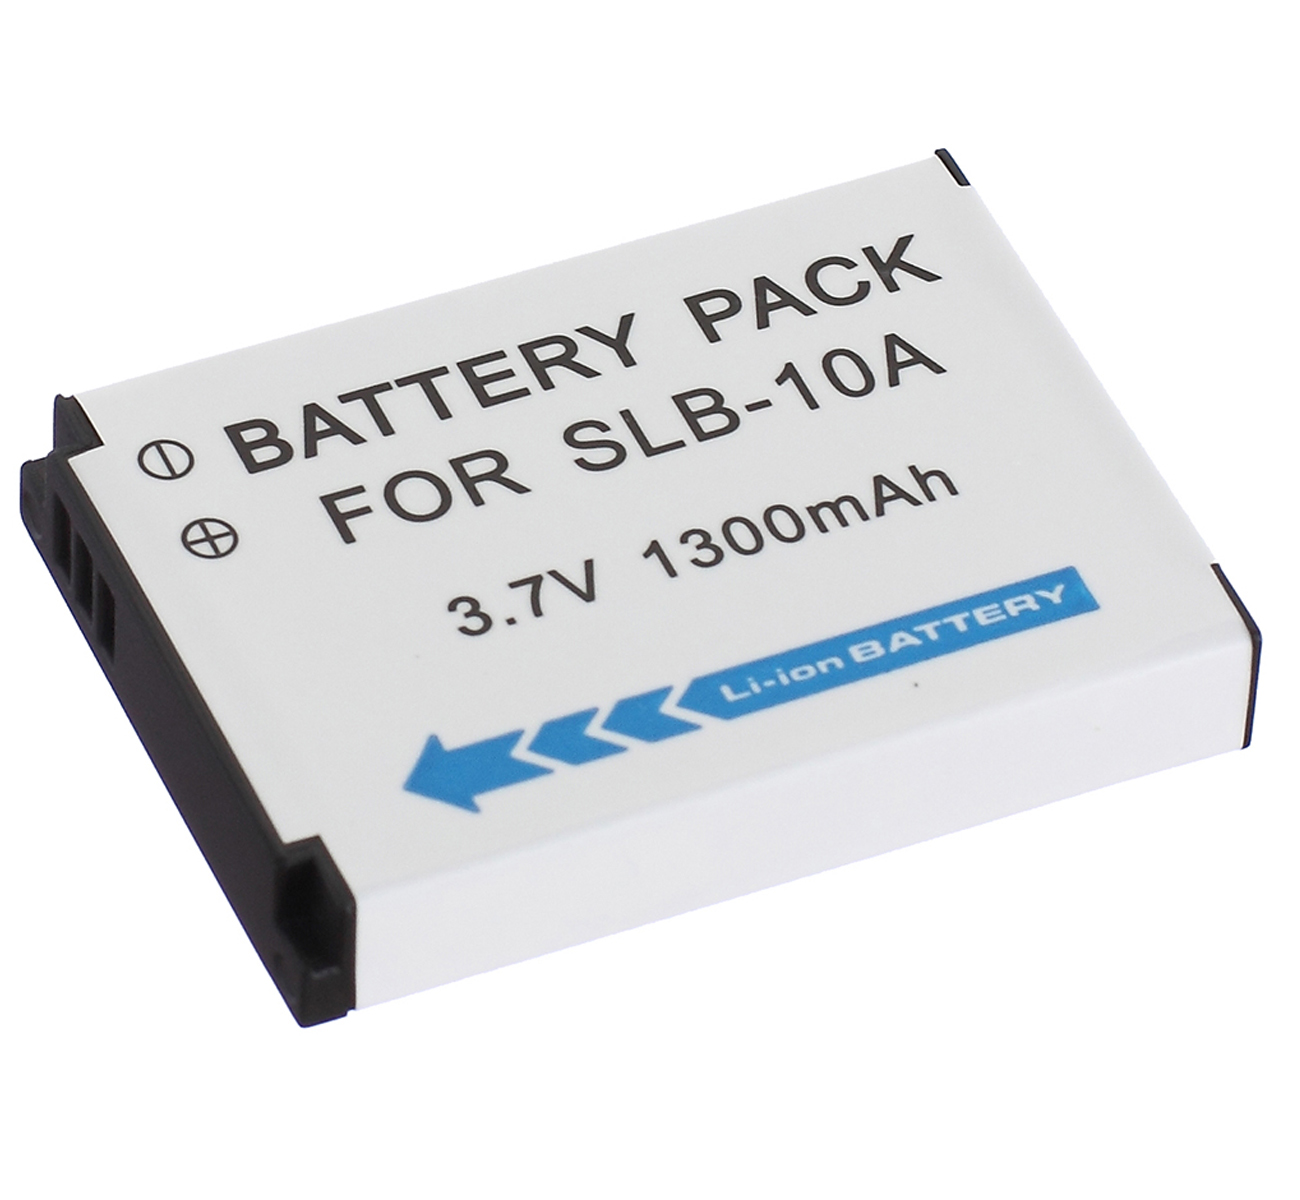 Battery Pack for <font><b>Samsung</b></font> WB700, WB750, <font><b>WB800F</b></font>, WB850F, WB855F, WB1100F, WB1101F, WB1102F, WB2100 Digital Camera image